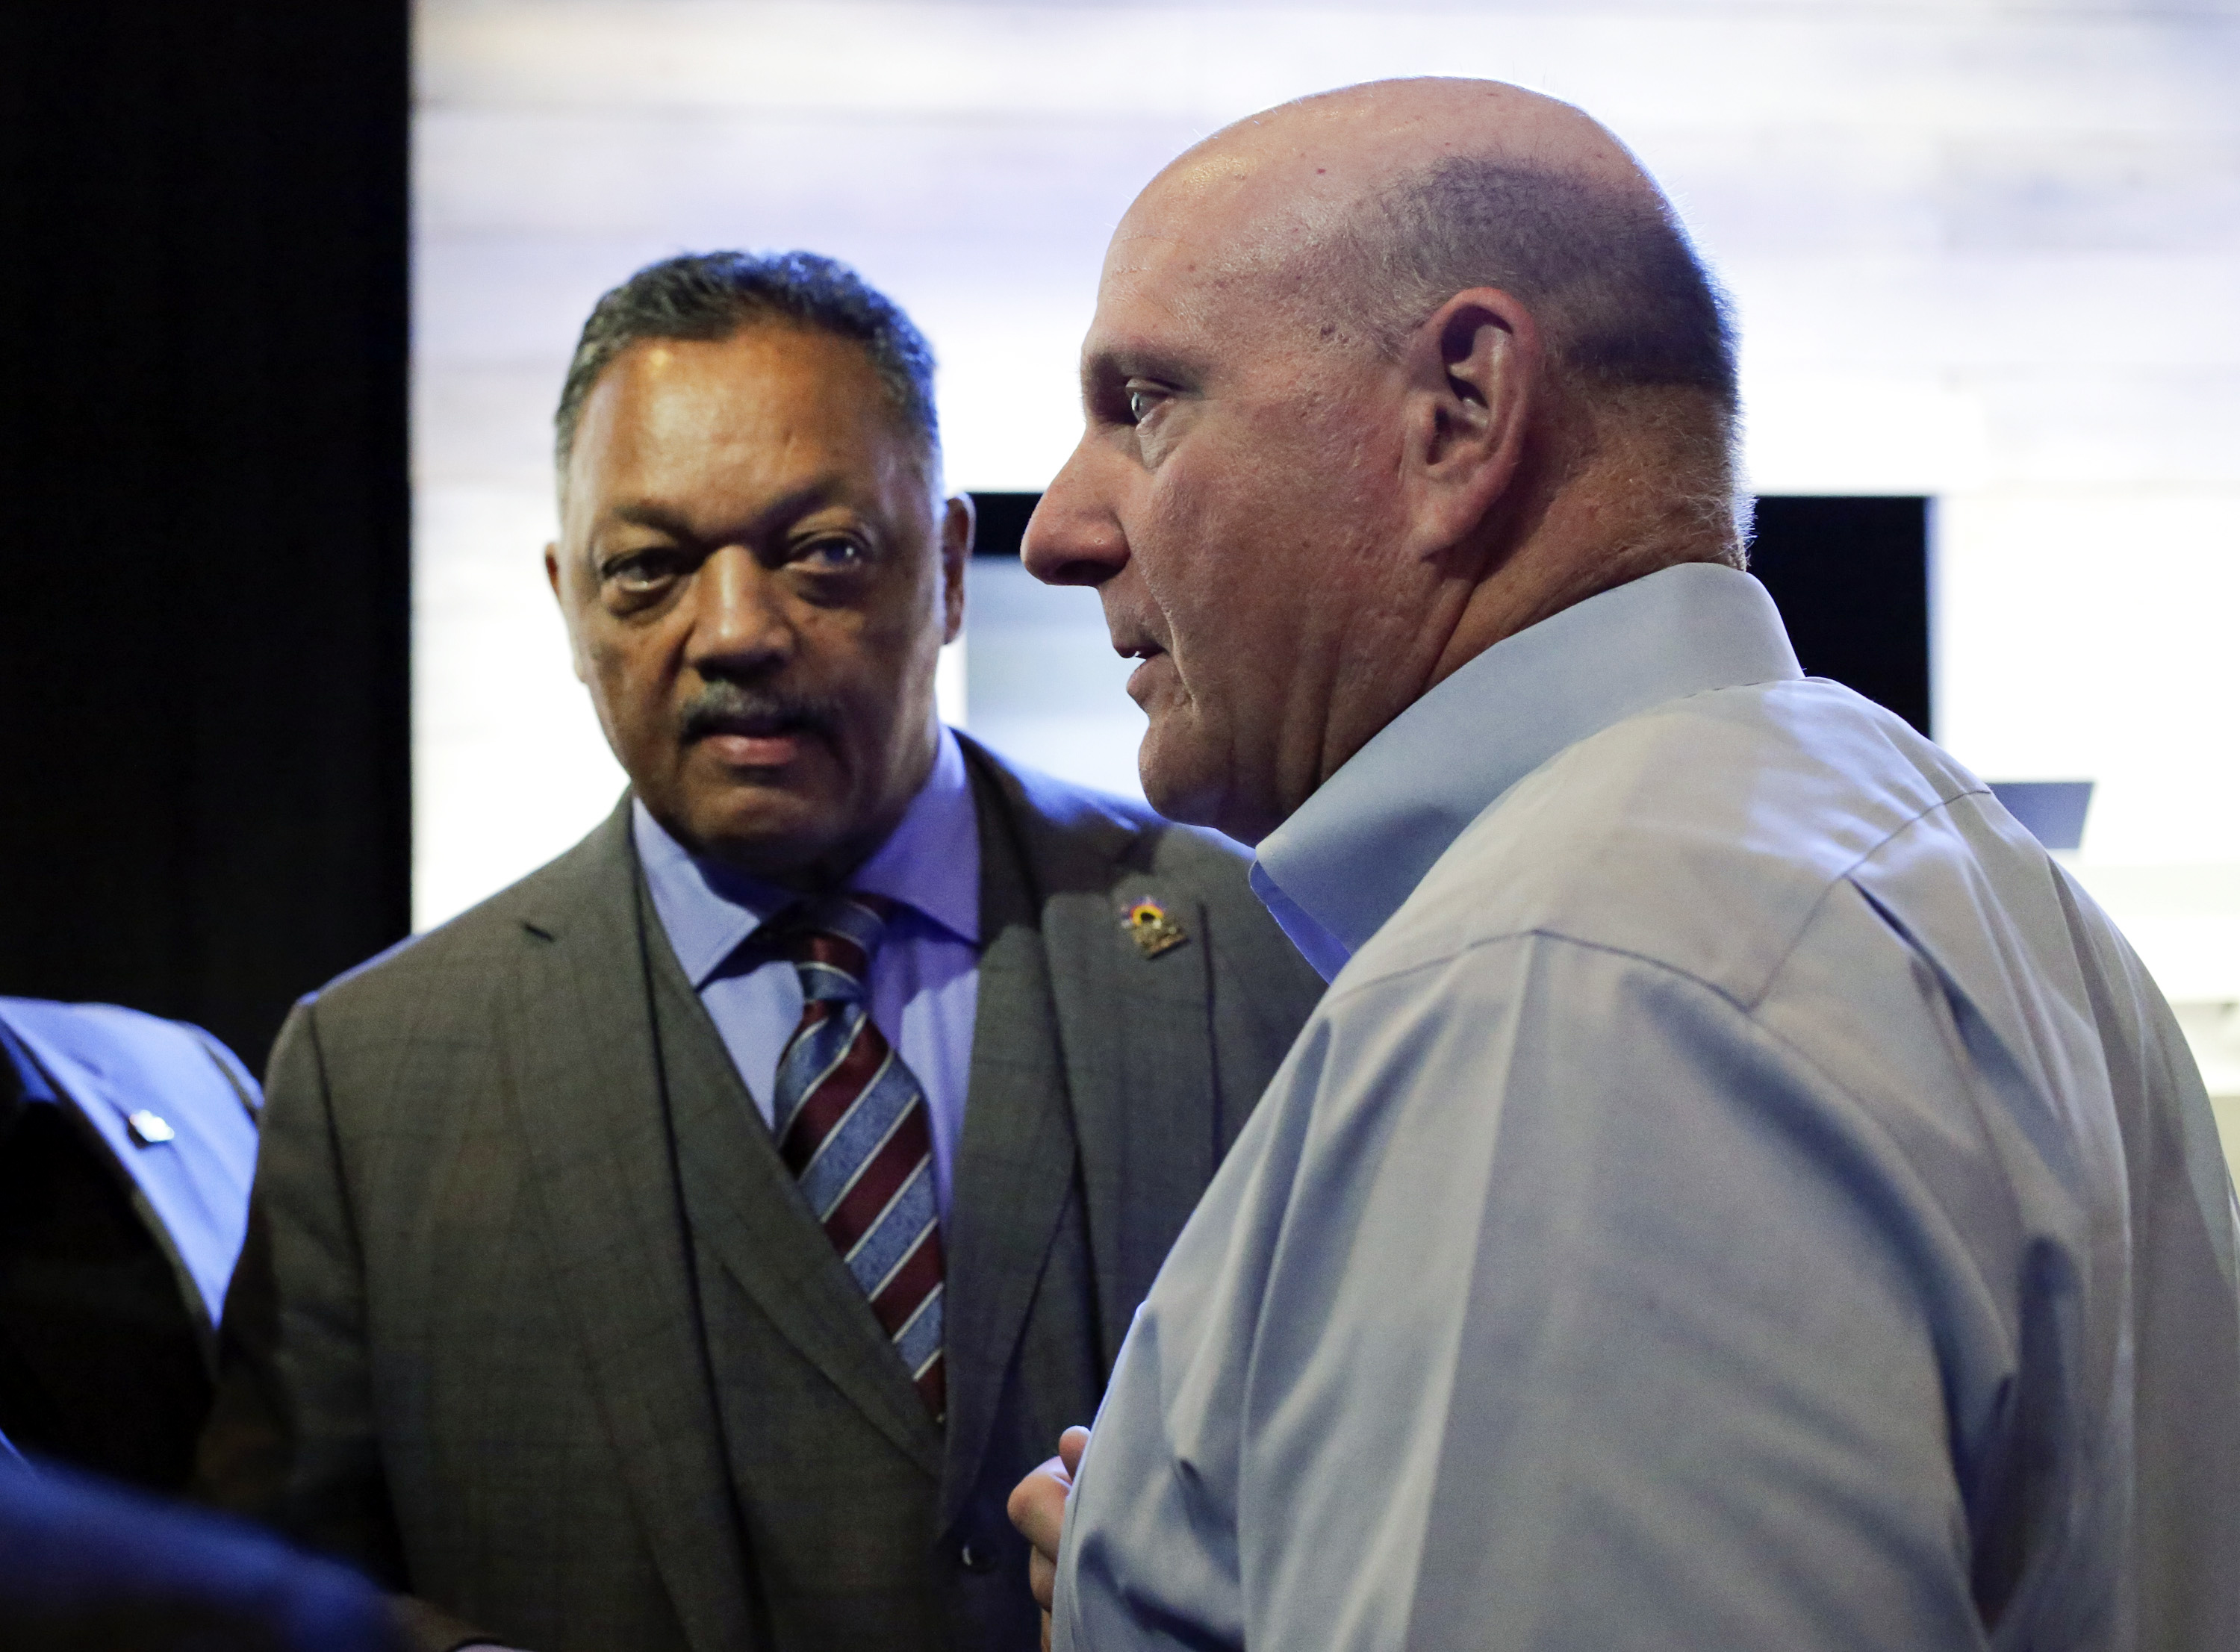 The Reverend Jesse Jackson and former Microsoft Corp Chief Executive Steve Ballmer attend the annual shareholders' meeting in Bellevue, Washington